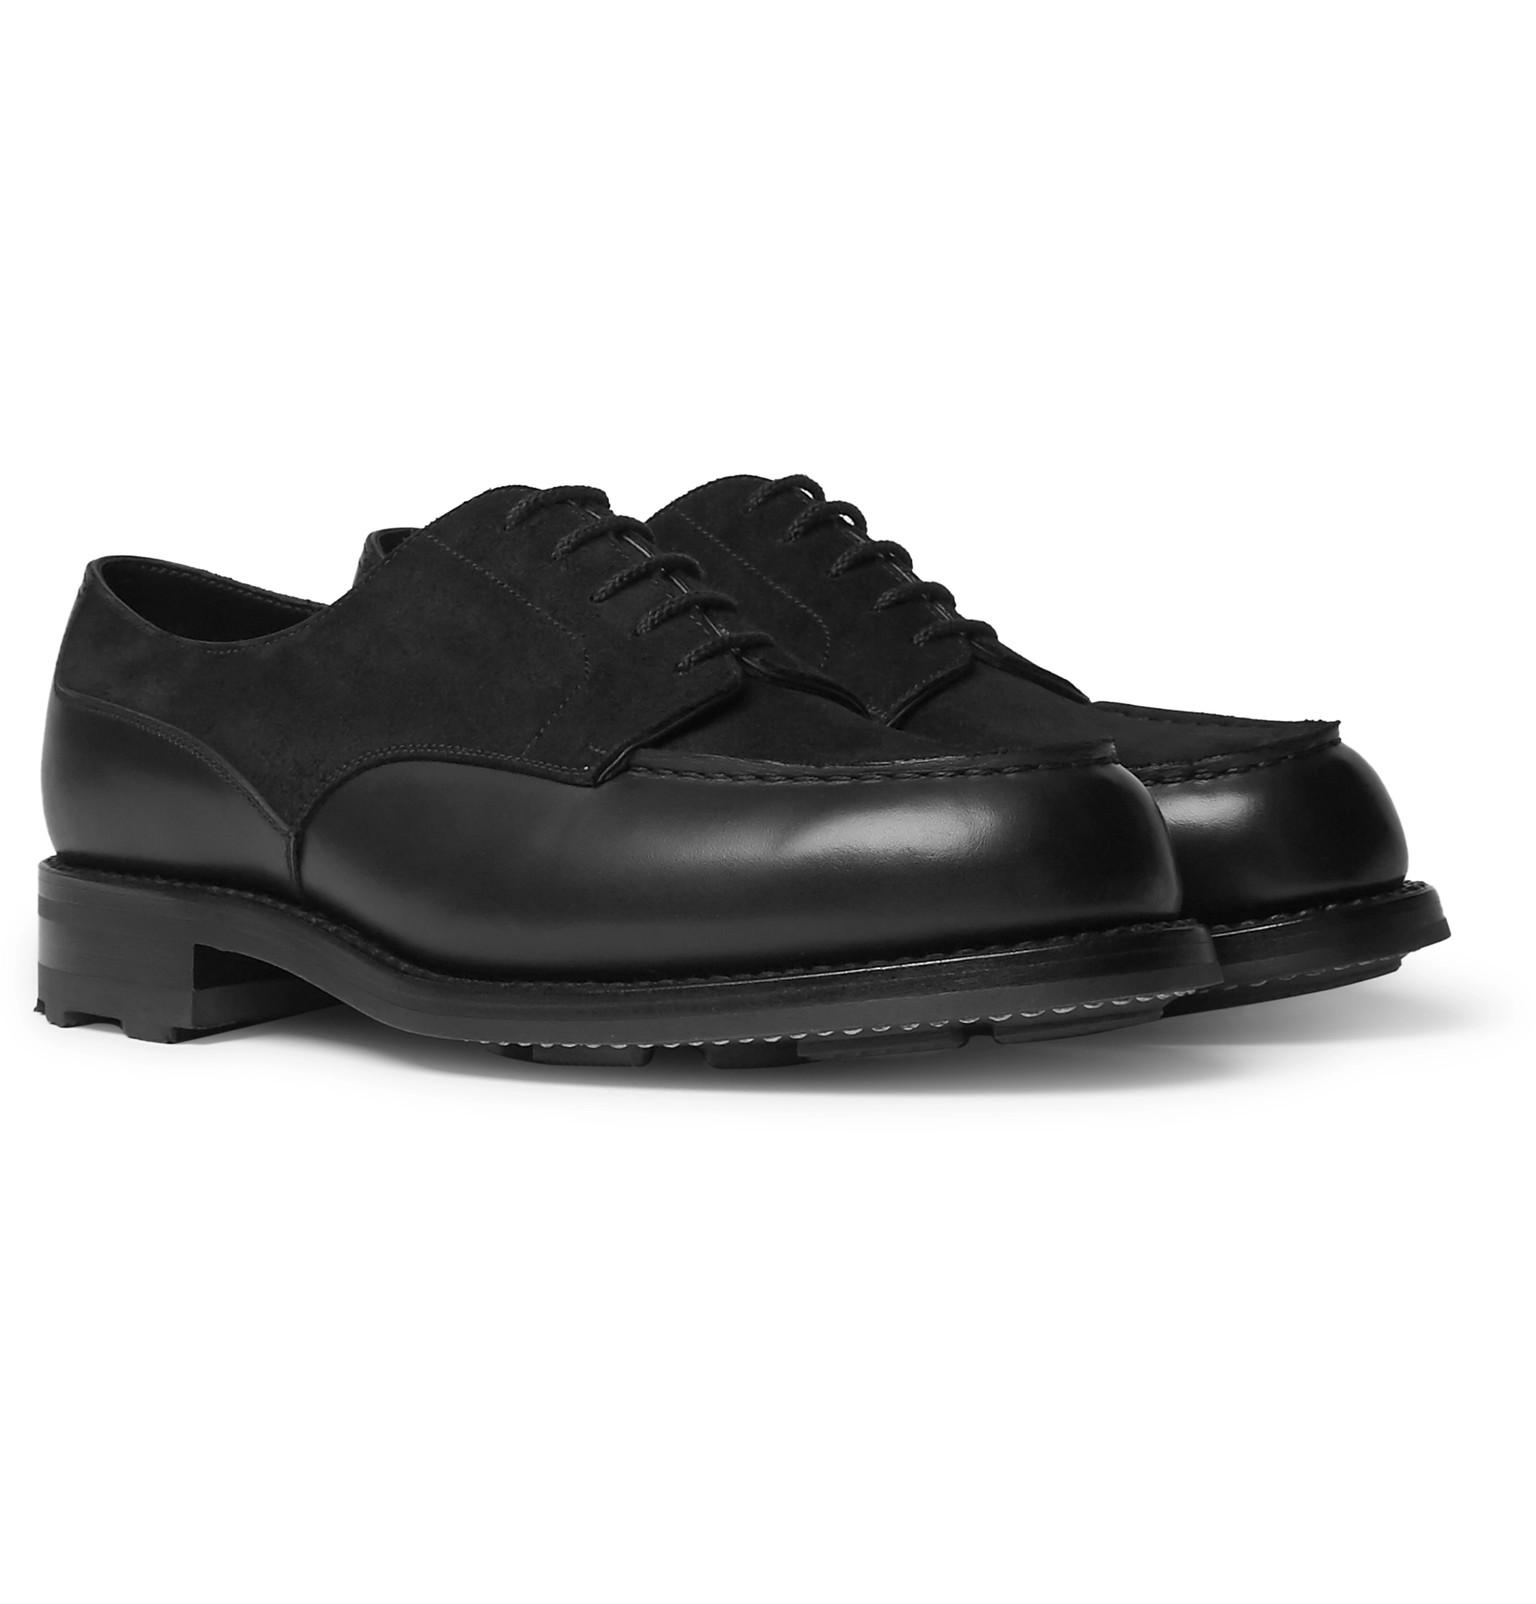 e8296dde8c8d4a J.M. Weston Suede And Leather Derby Shoes in Black for Men - Lyst